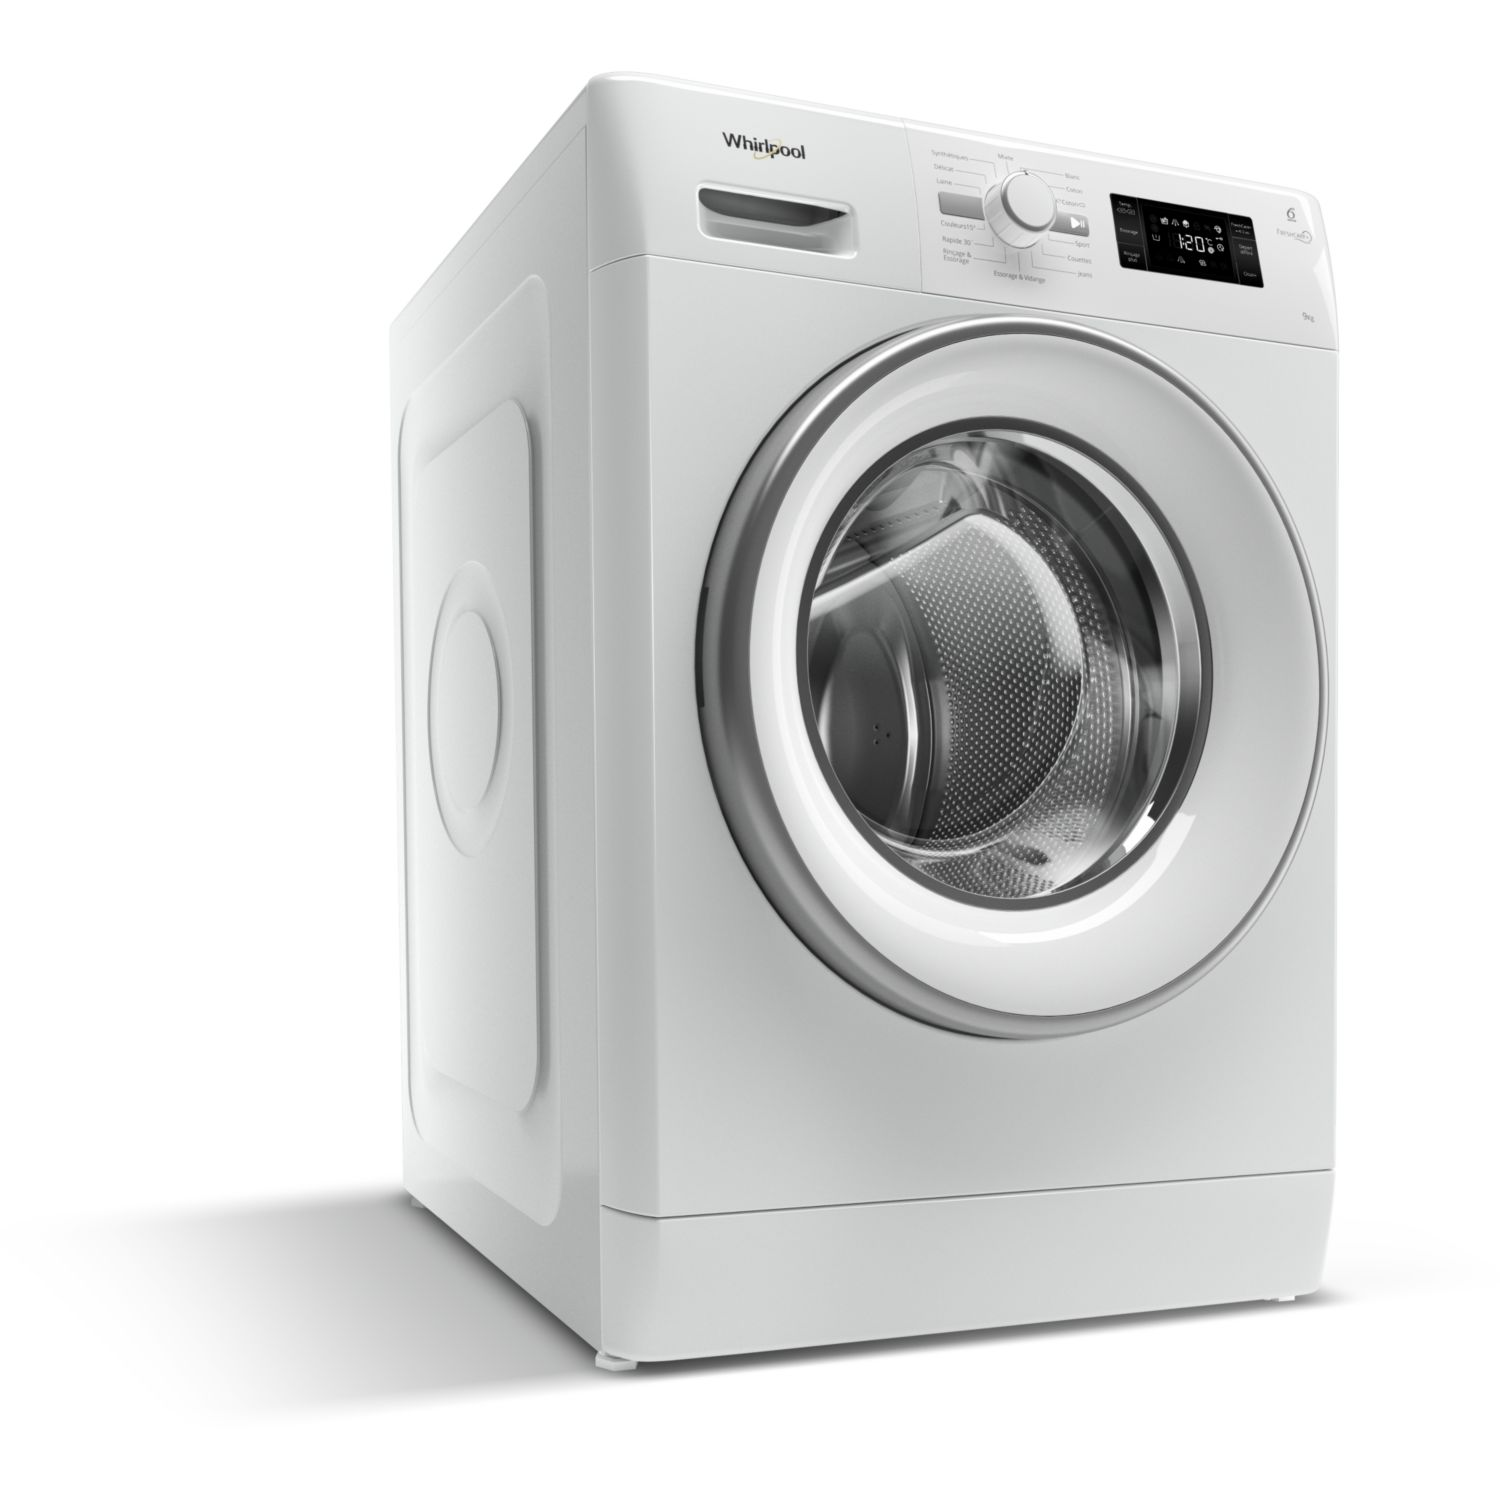 Location sur location lave linge frontal whirlpool freshcare fwg91484wsf - Lave linge qui pue ...